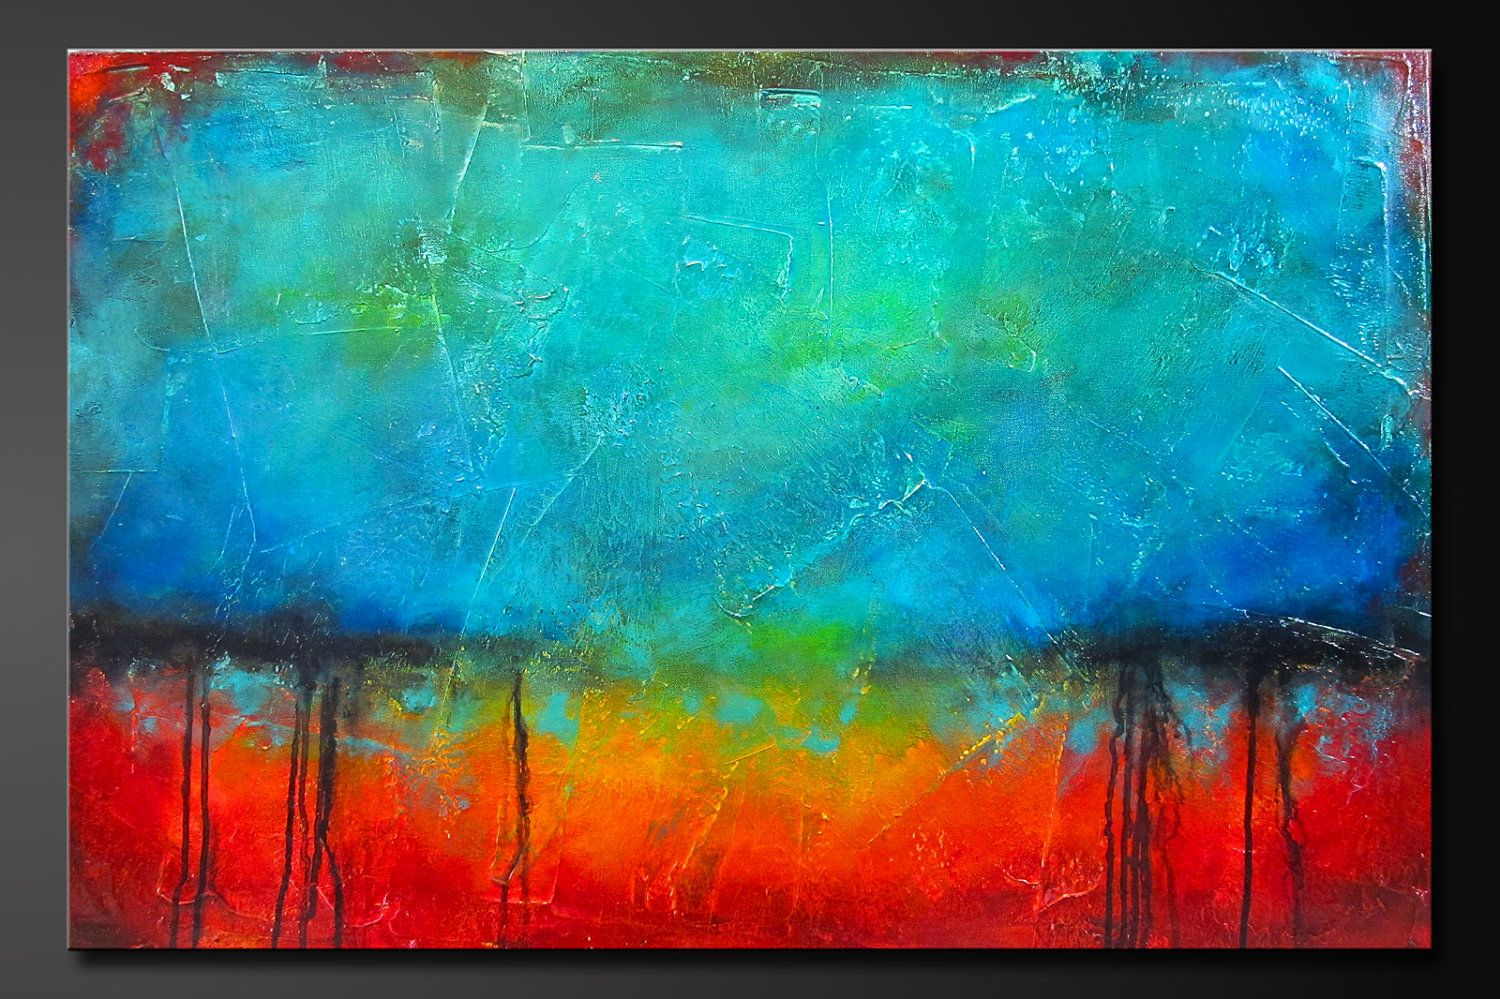 oxidized metal 9 abstract acrylic painting on canvas 36 x 24 highly textured. Black Bedroom Furniture Sets. Home Design Ideas